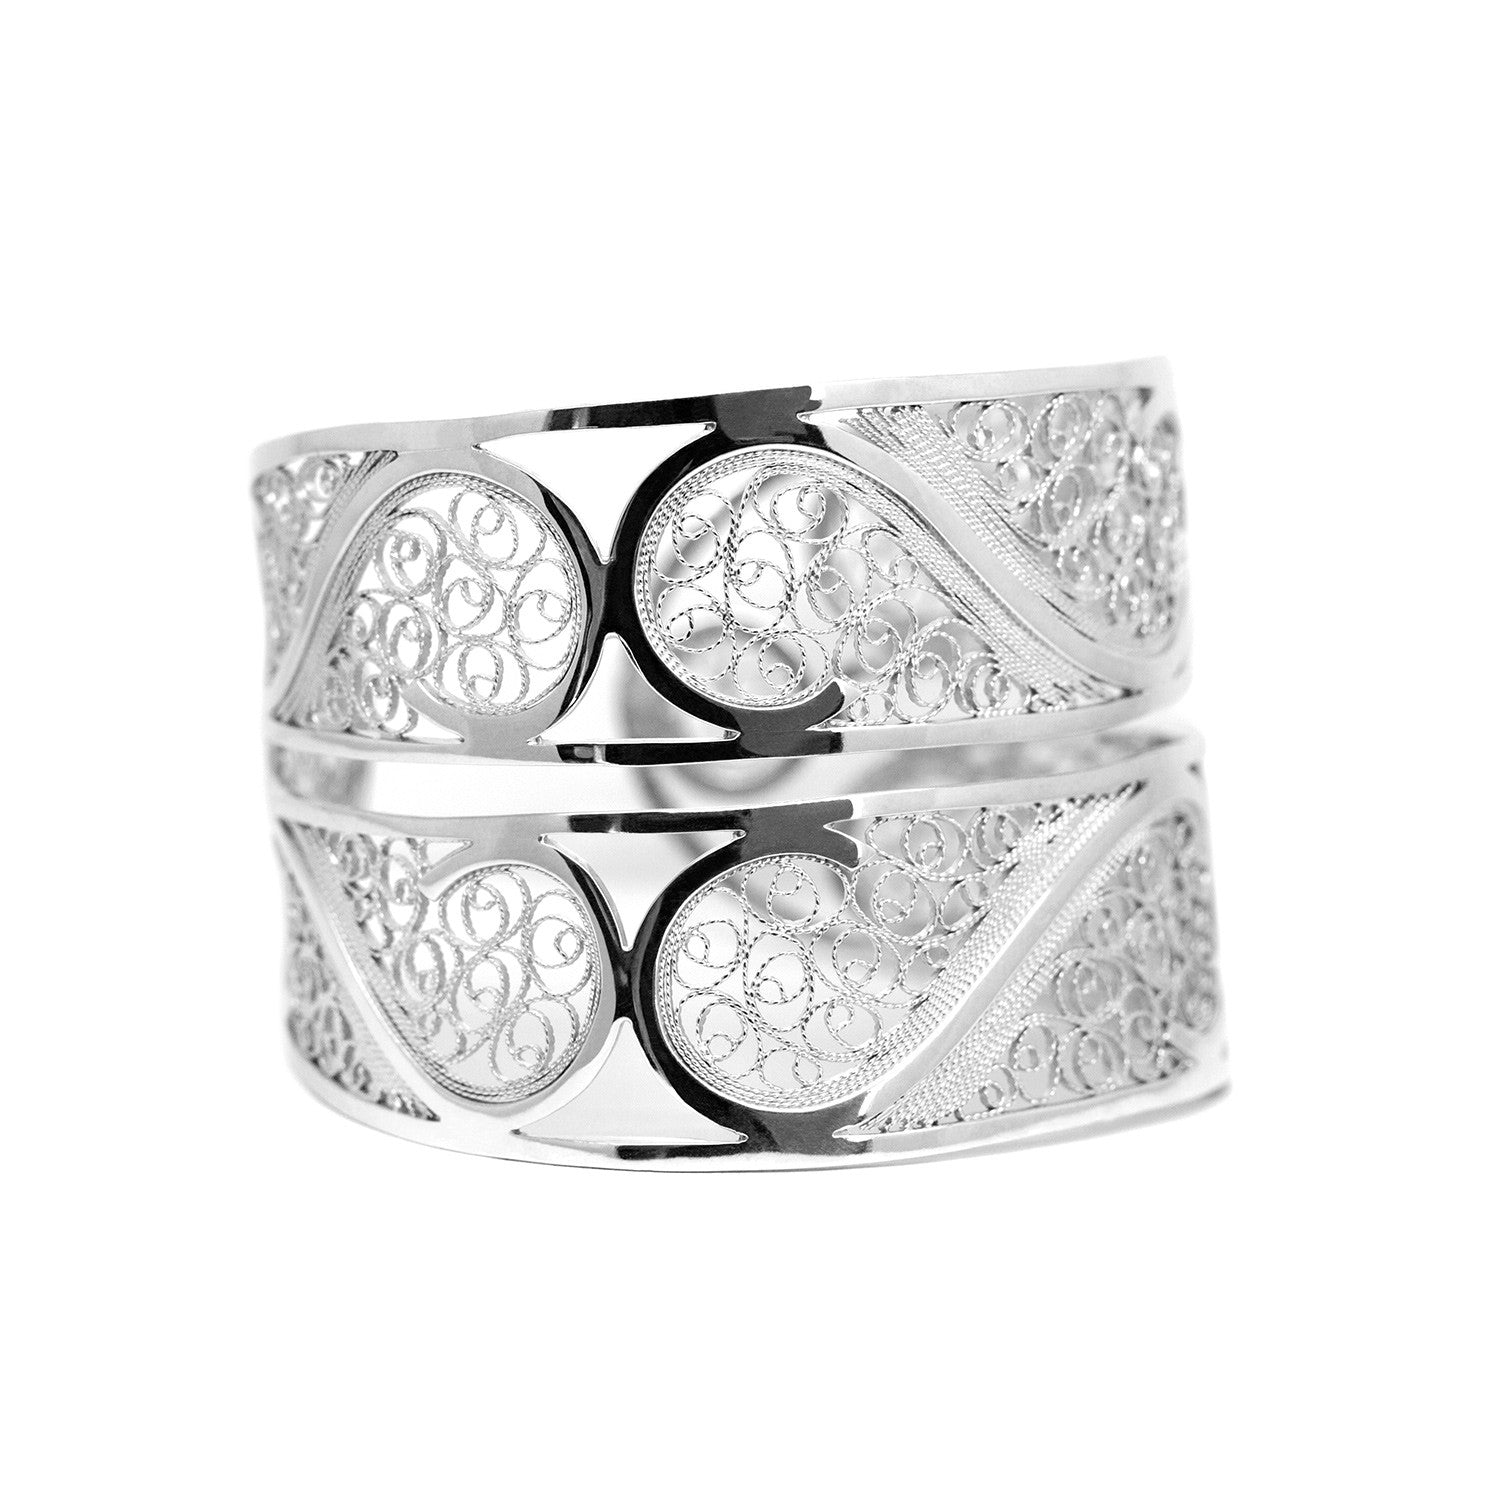 Filigree Links Bangle Bracelet. White